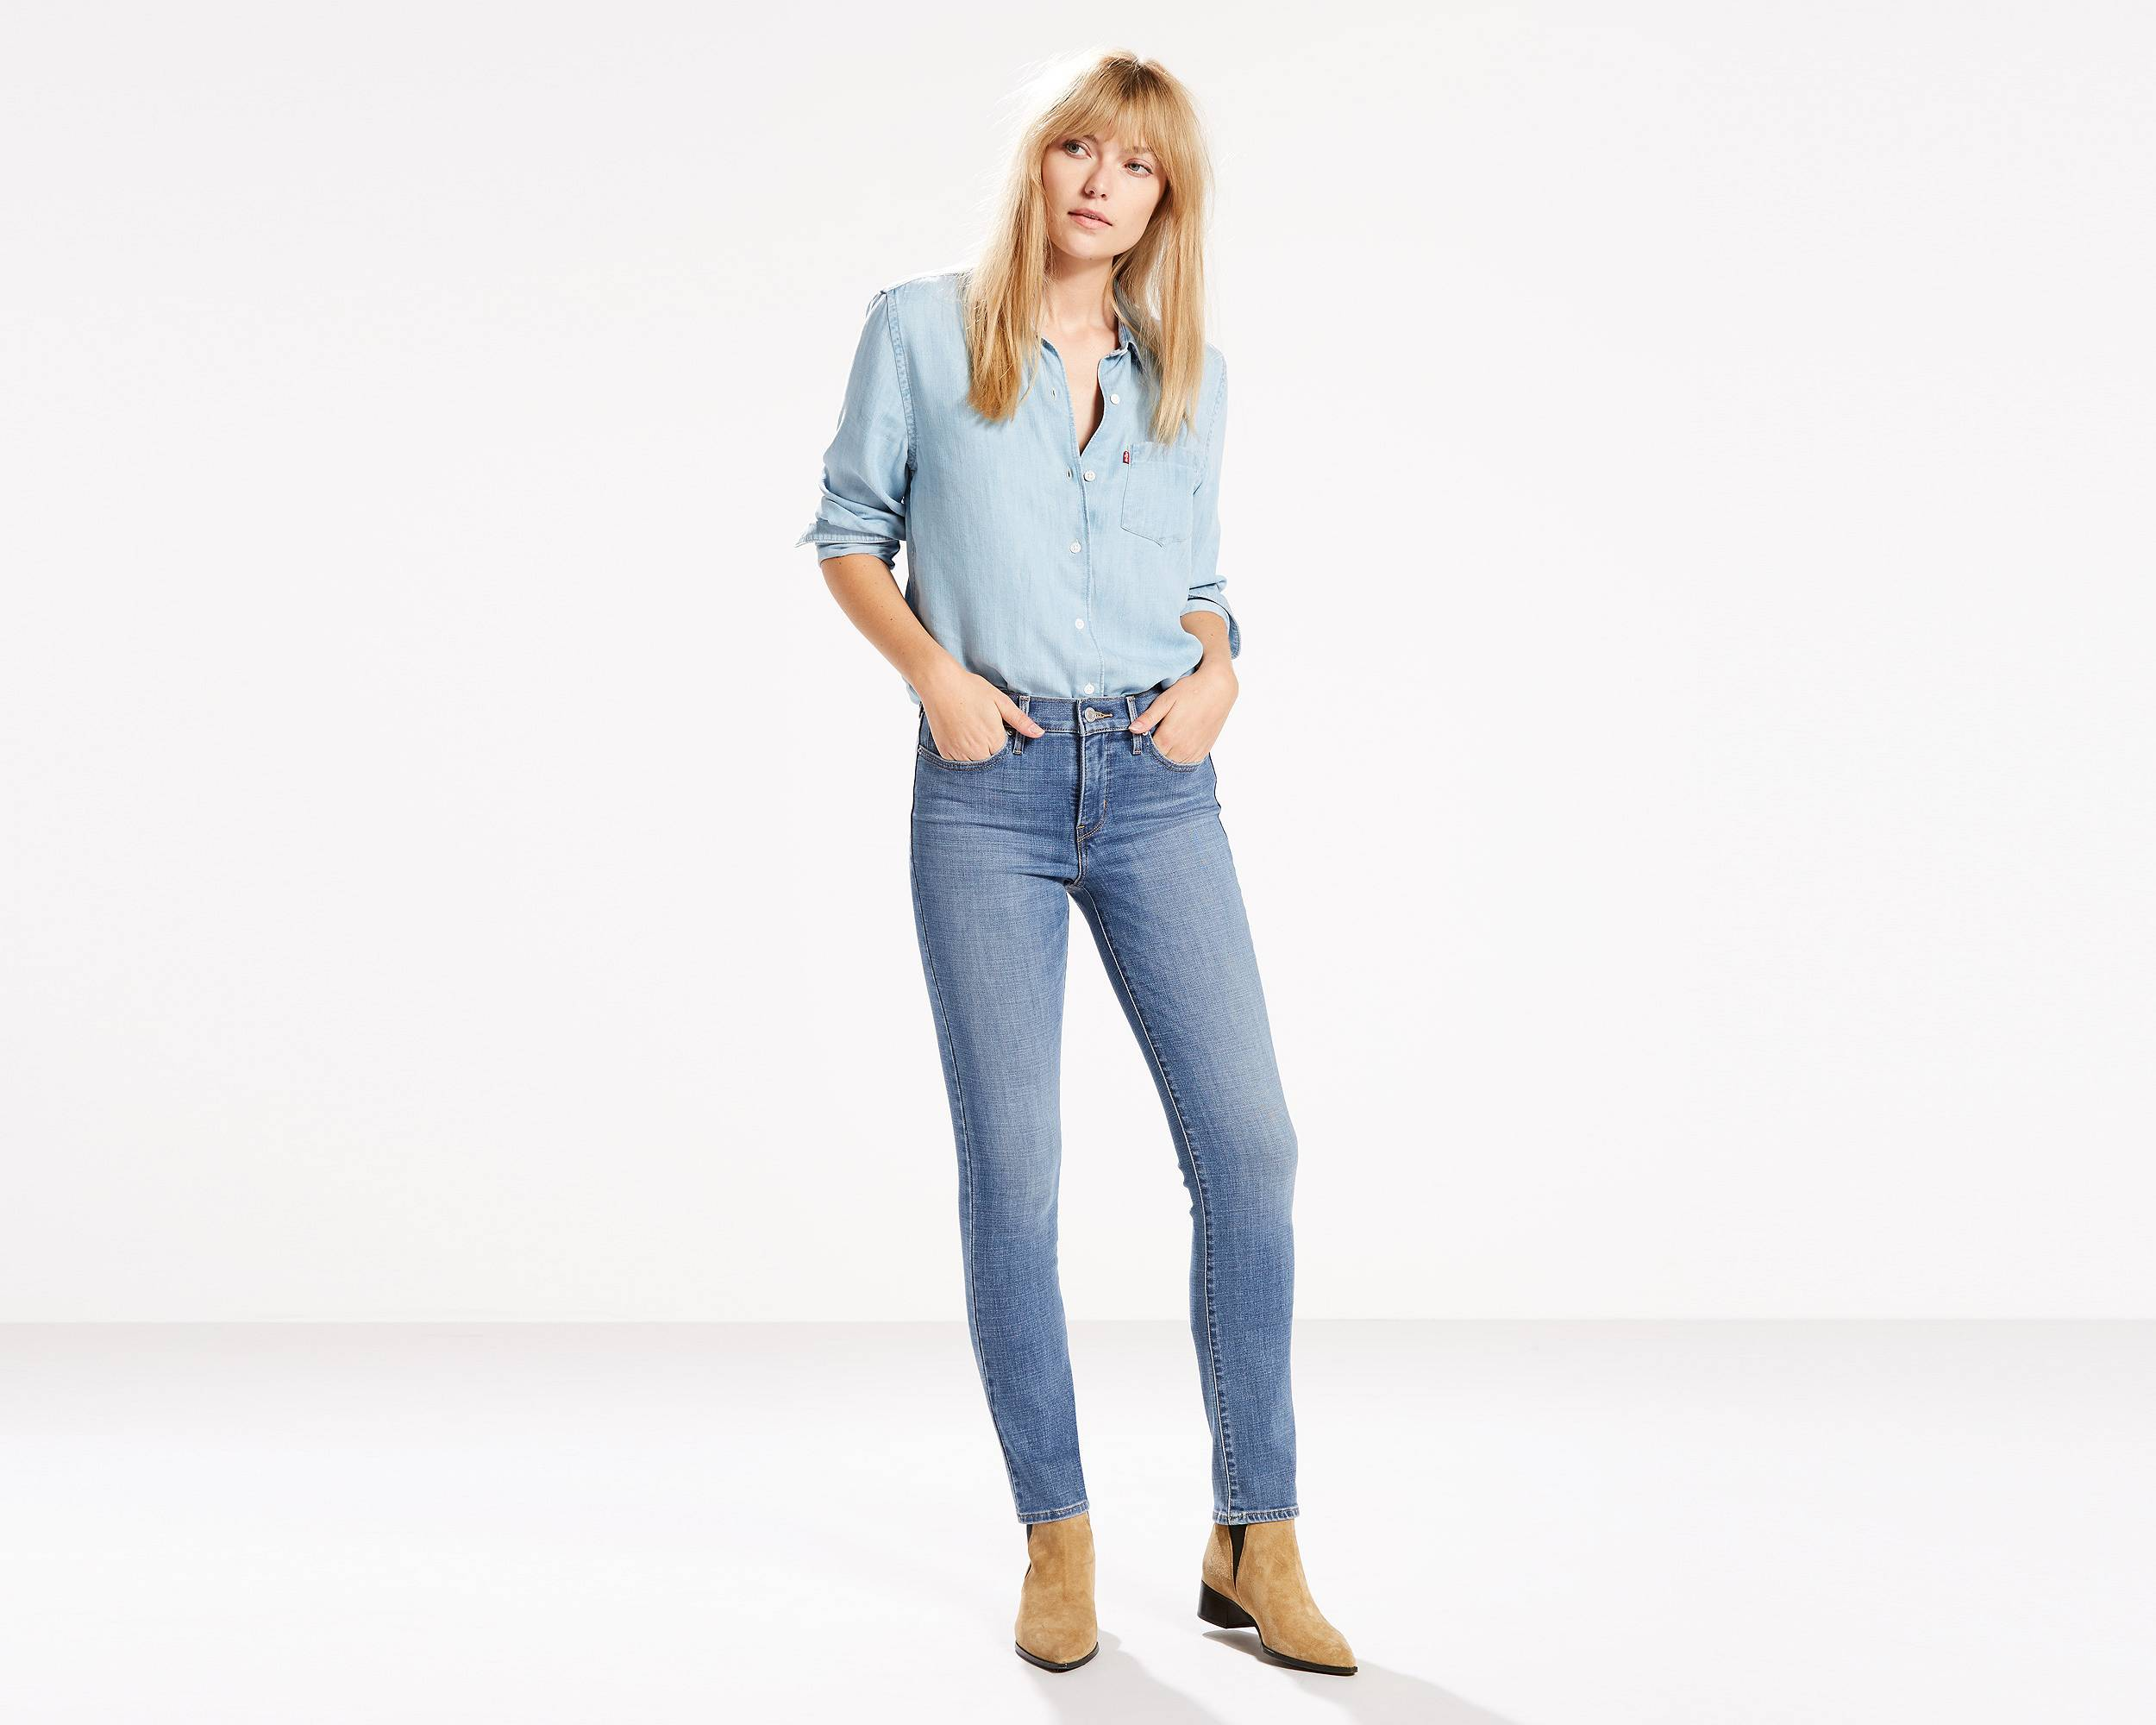 levis lady style clothing - photo #30